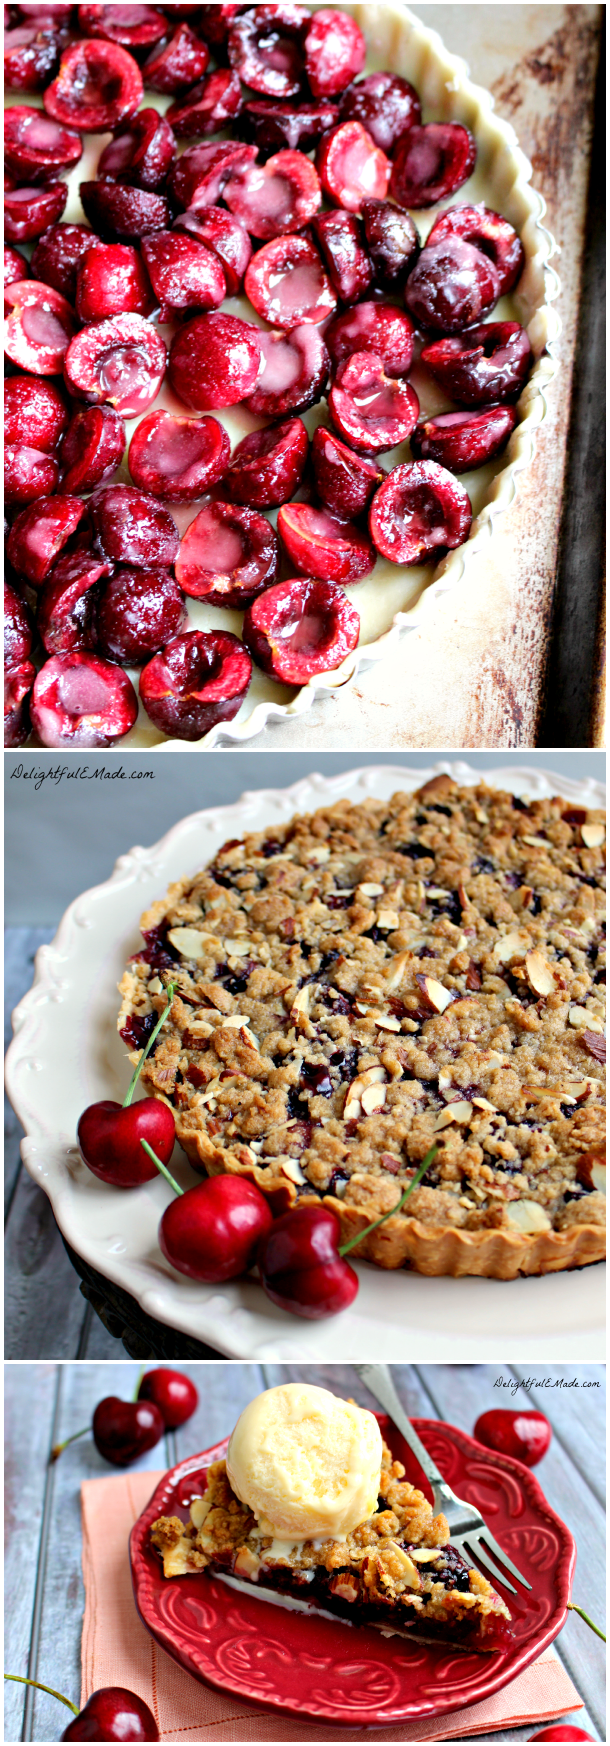 Sour Cherry Pie With Almond Crumble Recipe — Dishmaps